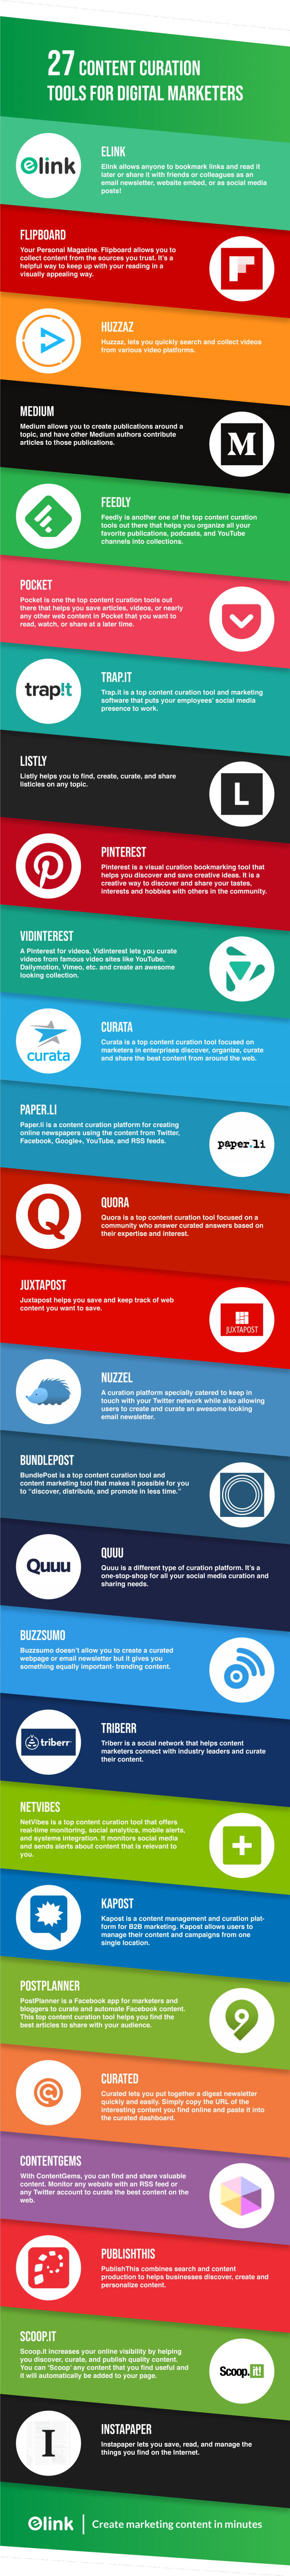 Content curation tools infographic